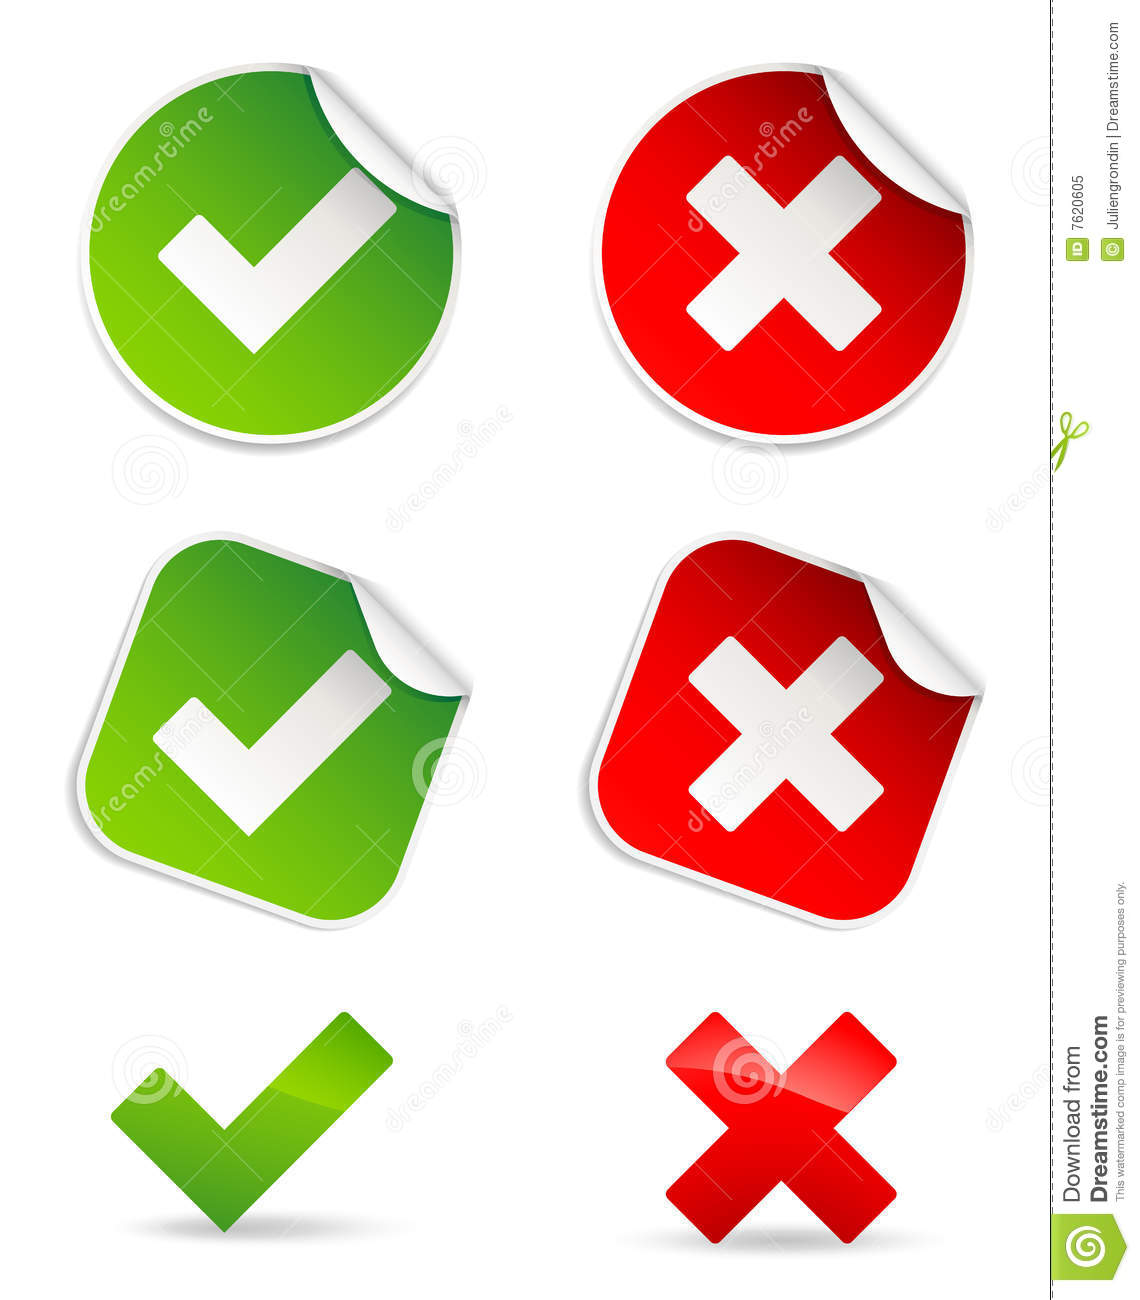 image clipart validation - photo #15